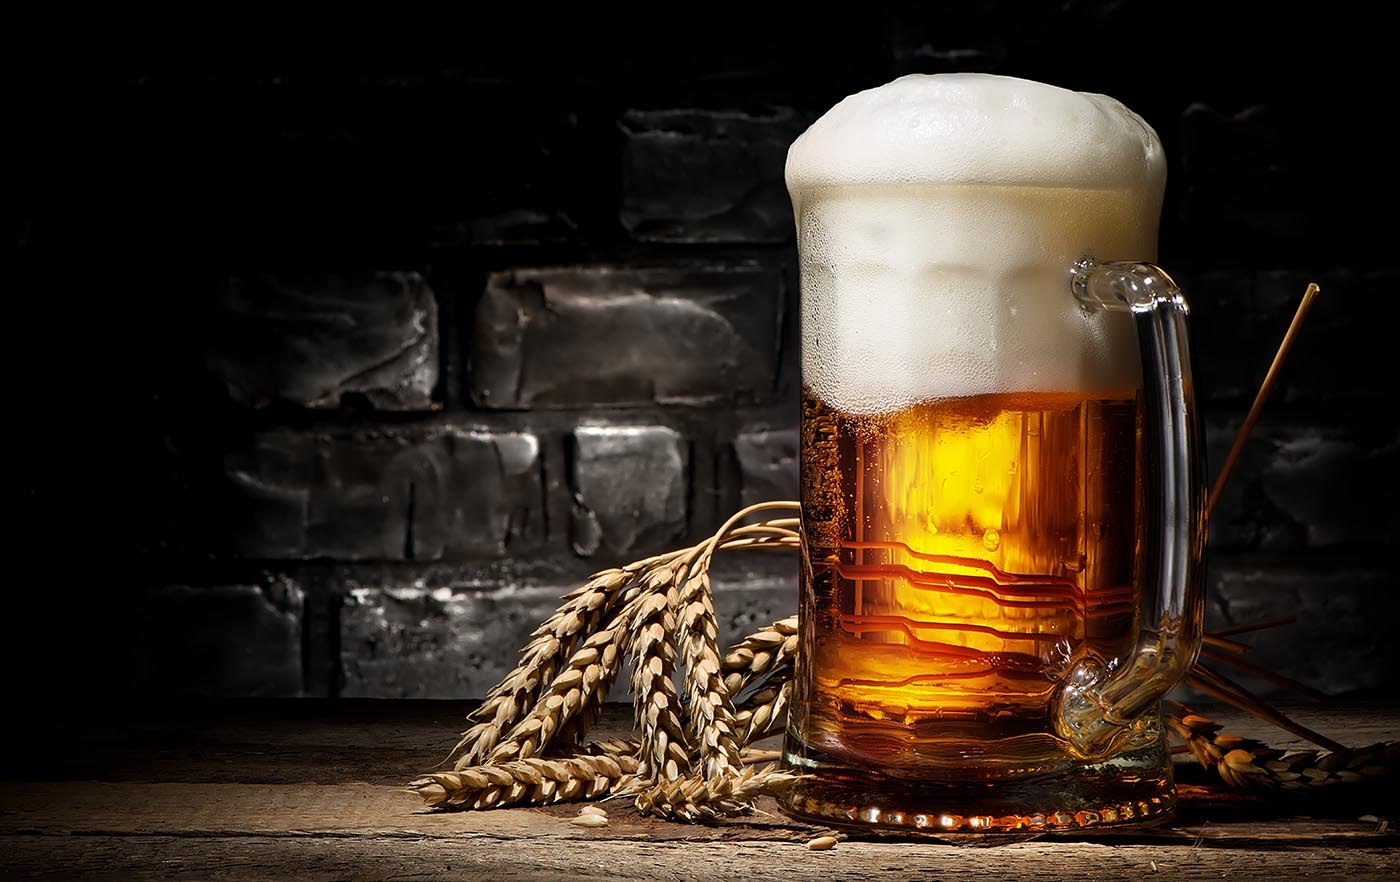 picture of a large mug of light beer on a wooden table with wheat next to it and black in the background